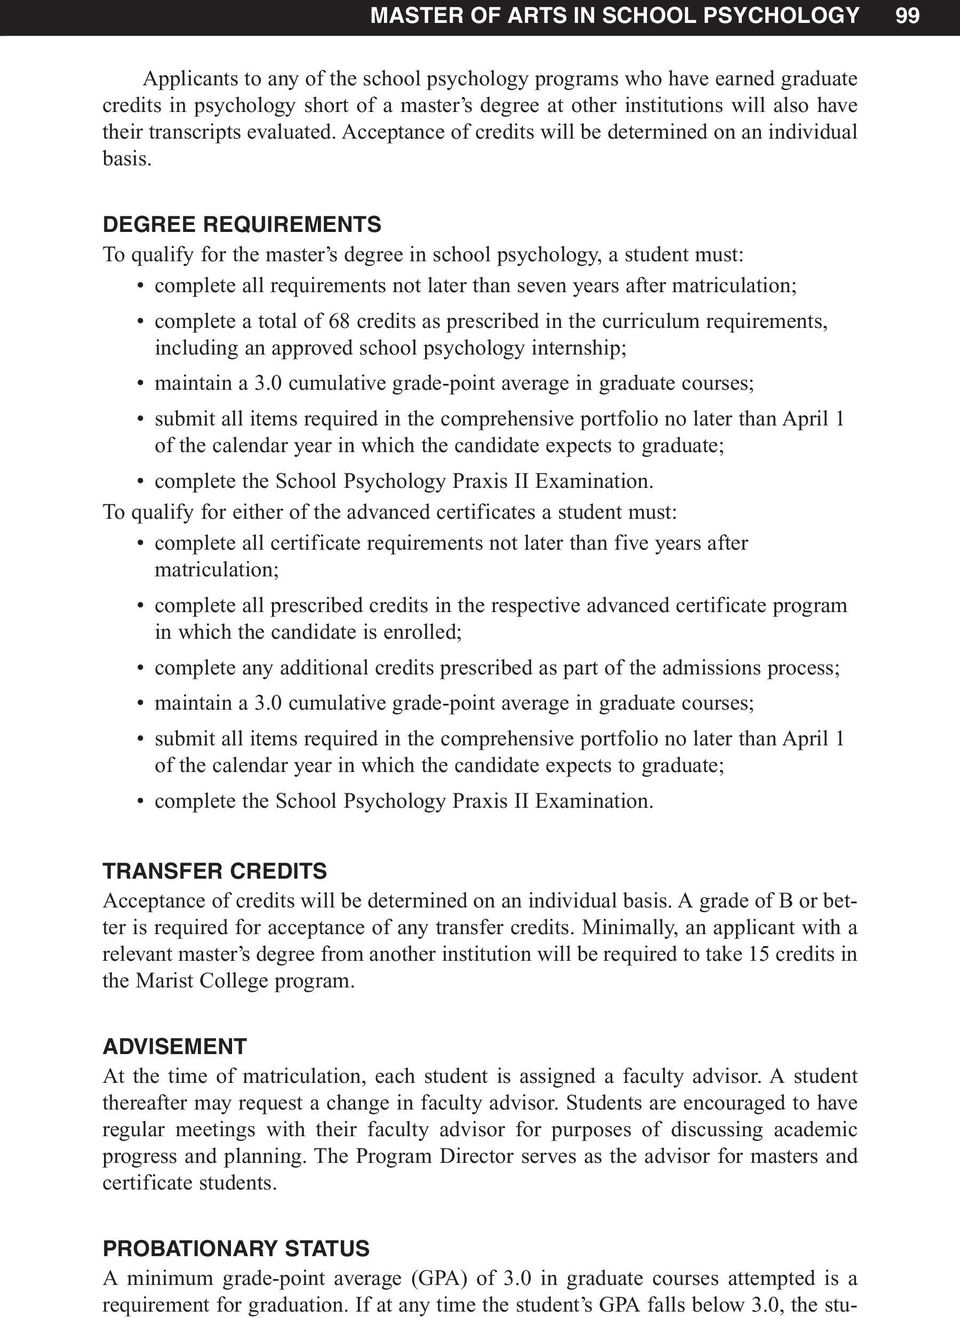 DEGREE REQUIREMENTS To qualify for the master s degree in school psychology, a student must: complete all requirements not later than seven years after matriculation; complete a total of 68 credits